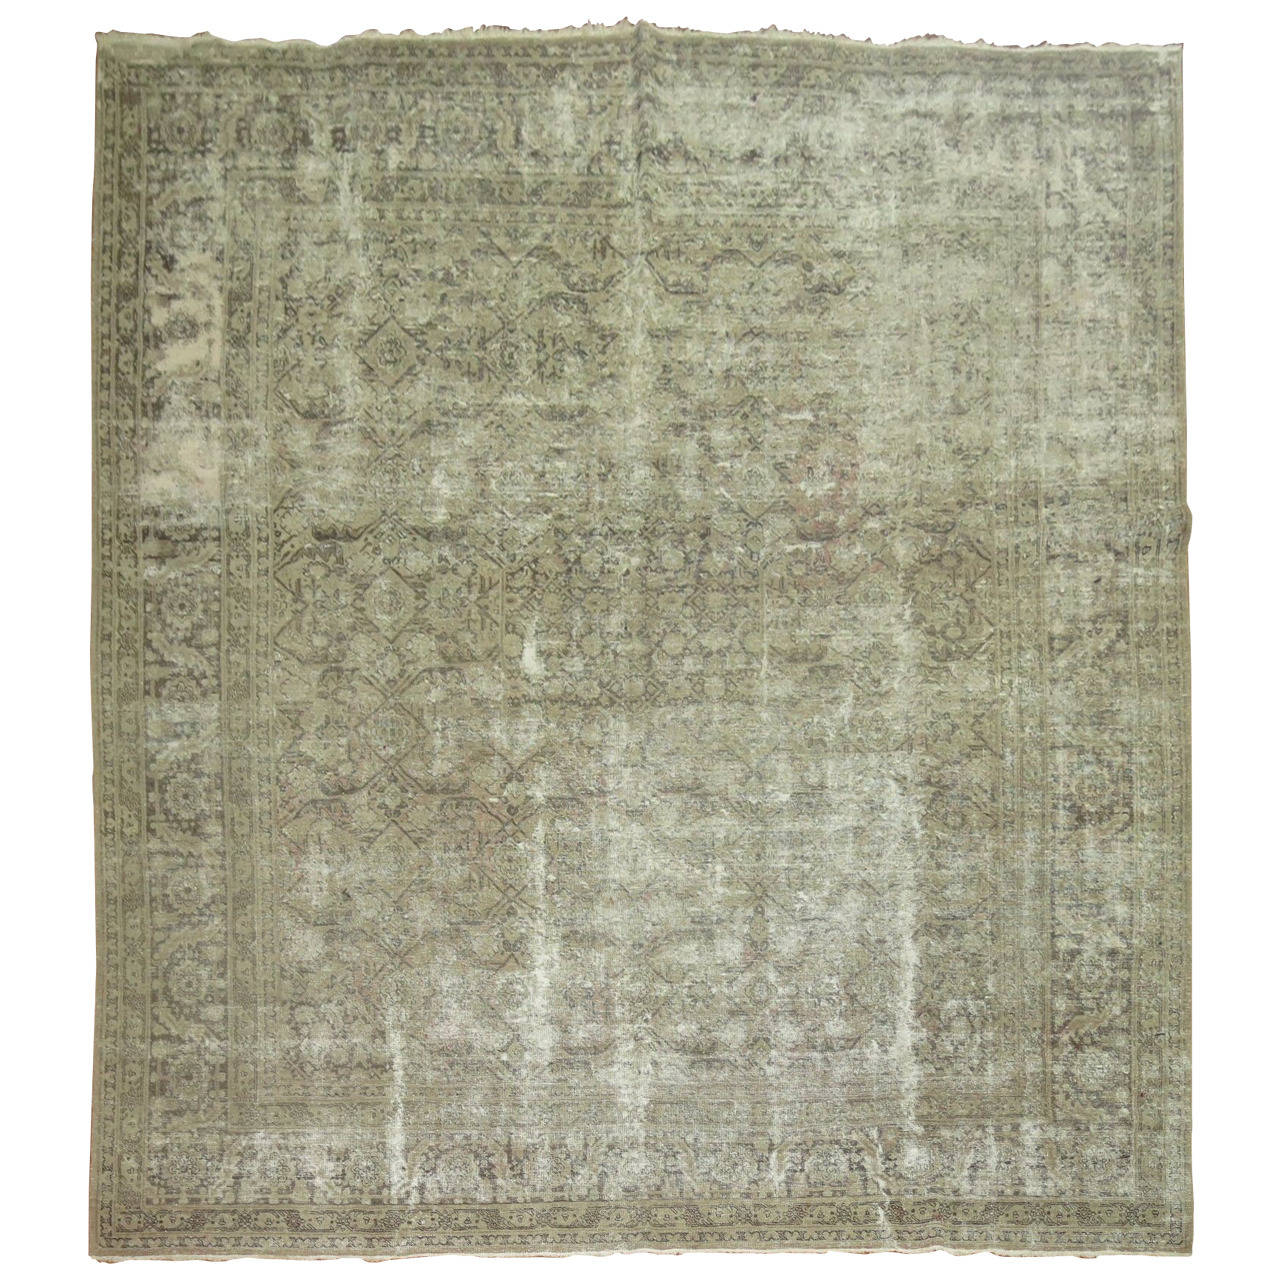 Distressed Antique Persian Tabriz Rug At 1stdibs